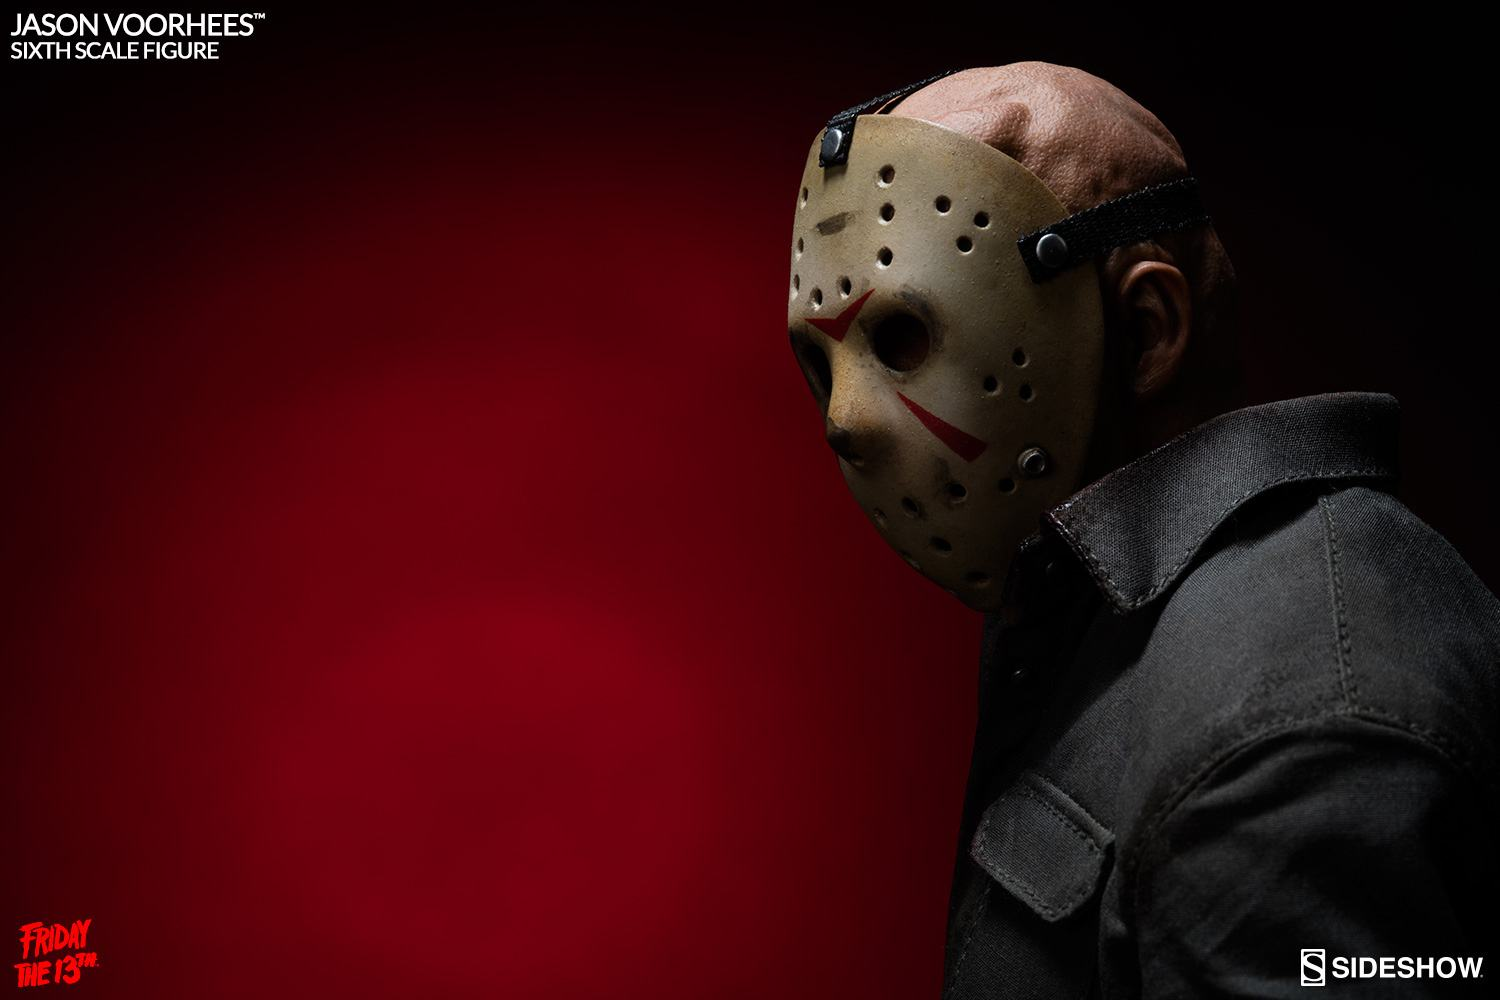 Jason-Voorhees-Friday-the-13th-Pt-III-Sixth-Scale-Action-Figure-04